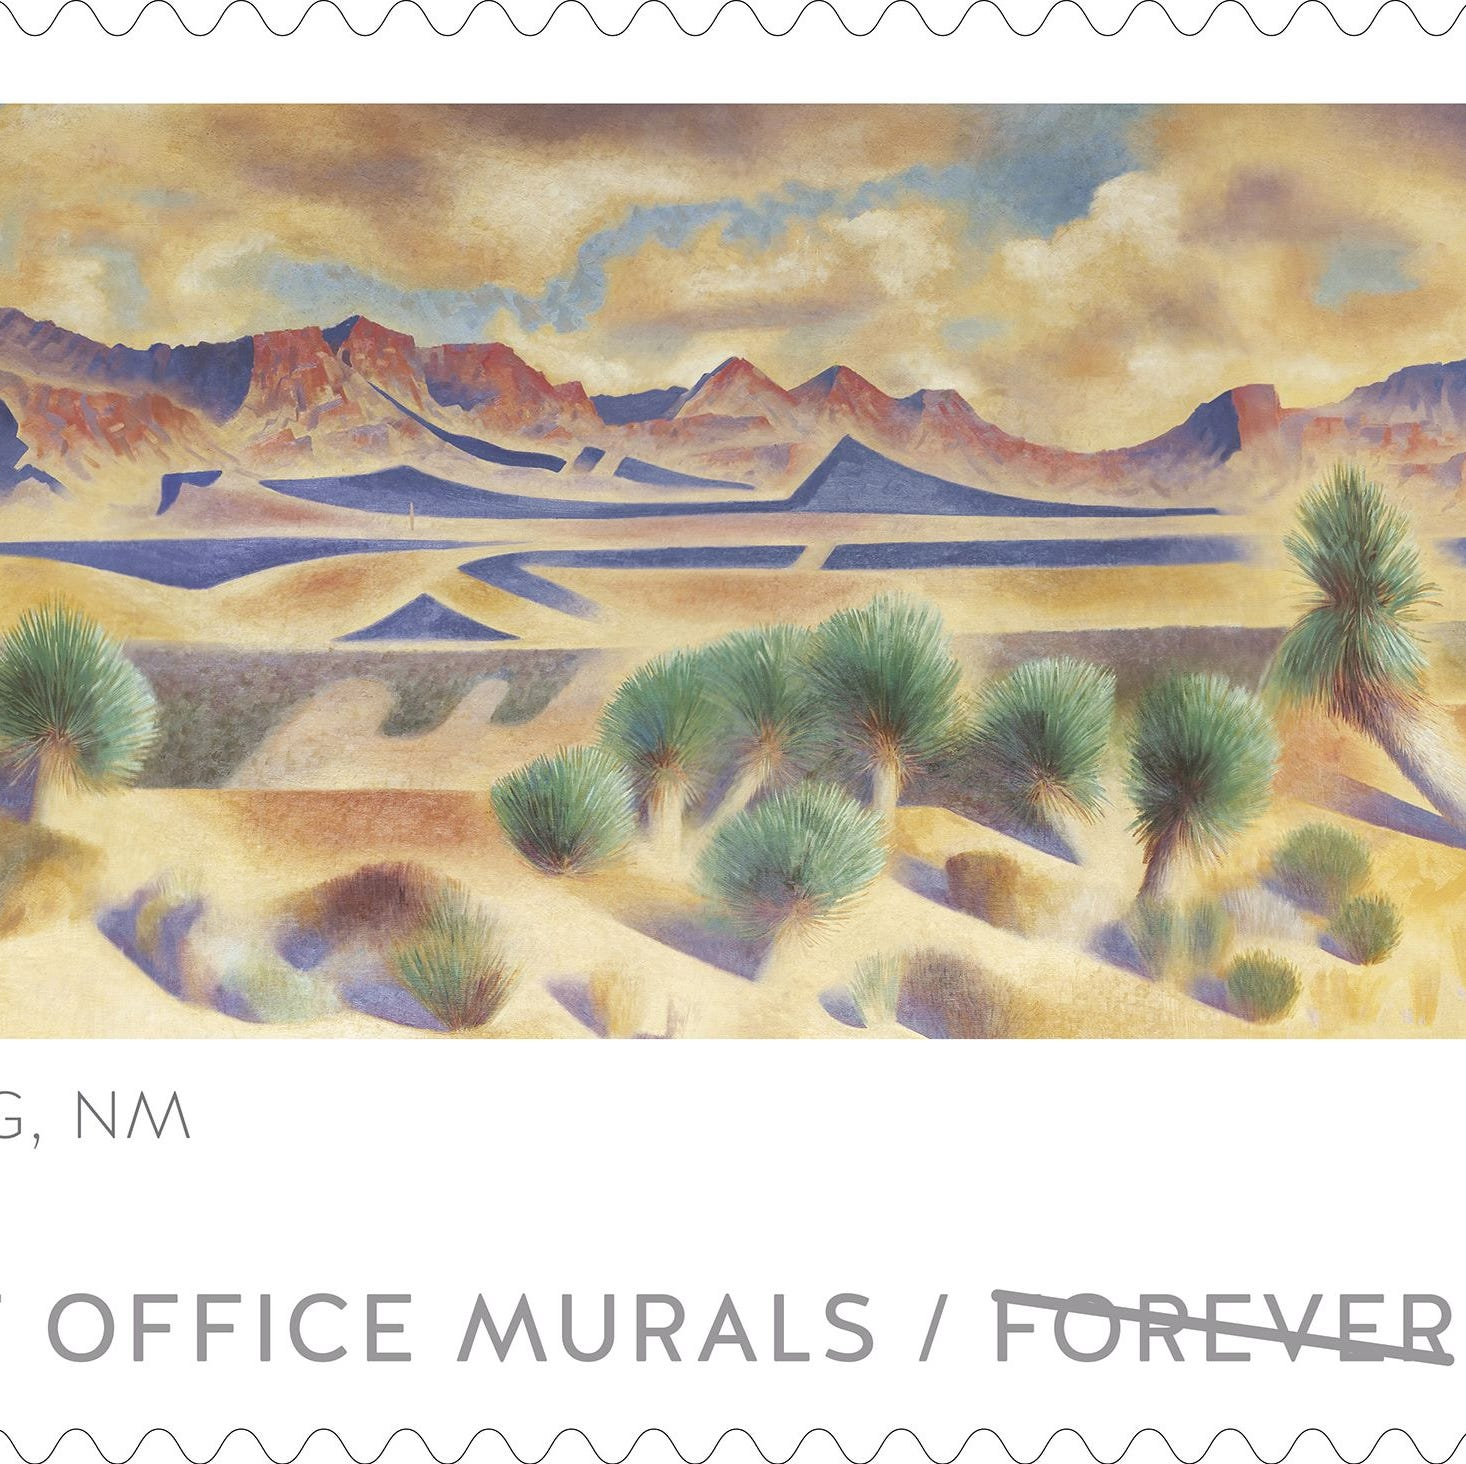 Deming Post Office mural featured on U.S. Postal Service commemorative stamp